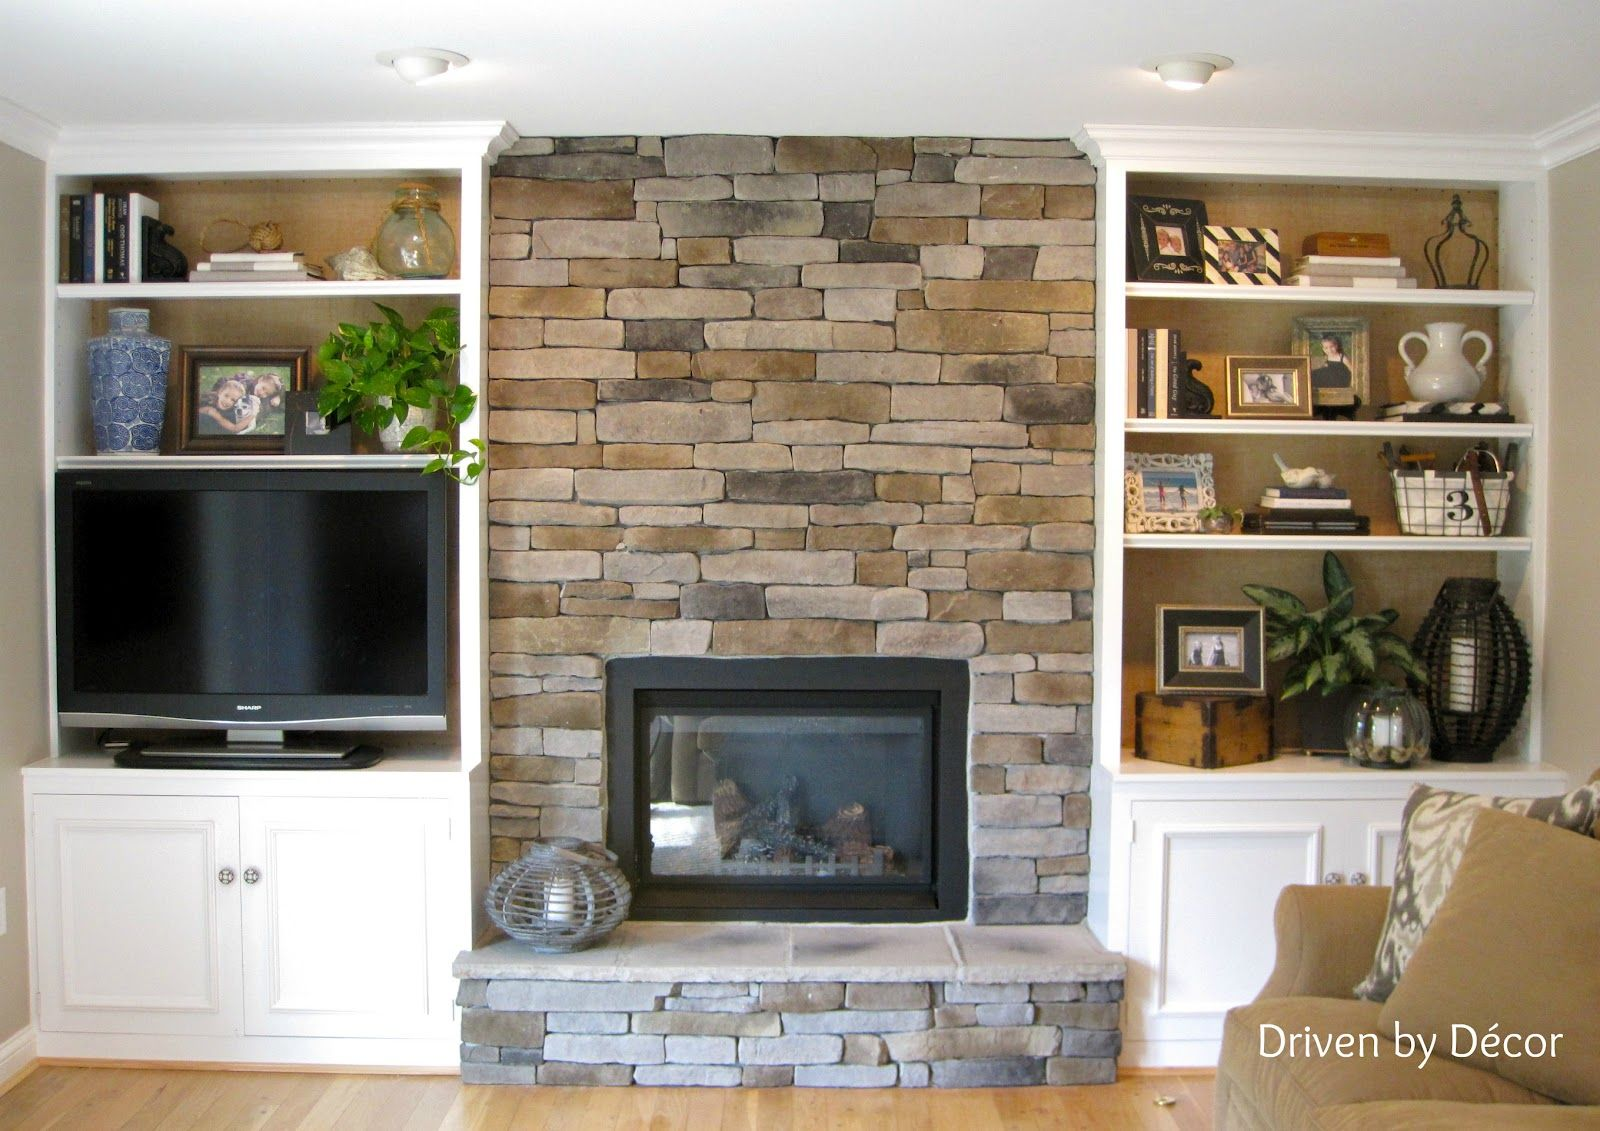 Living Room With Fireplace And Helves transforming a fireplace and built-in bookcases - love the stone